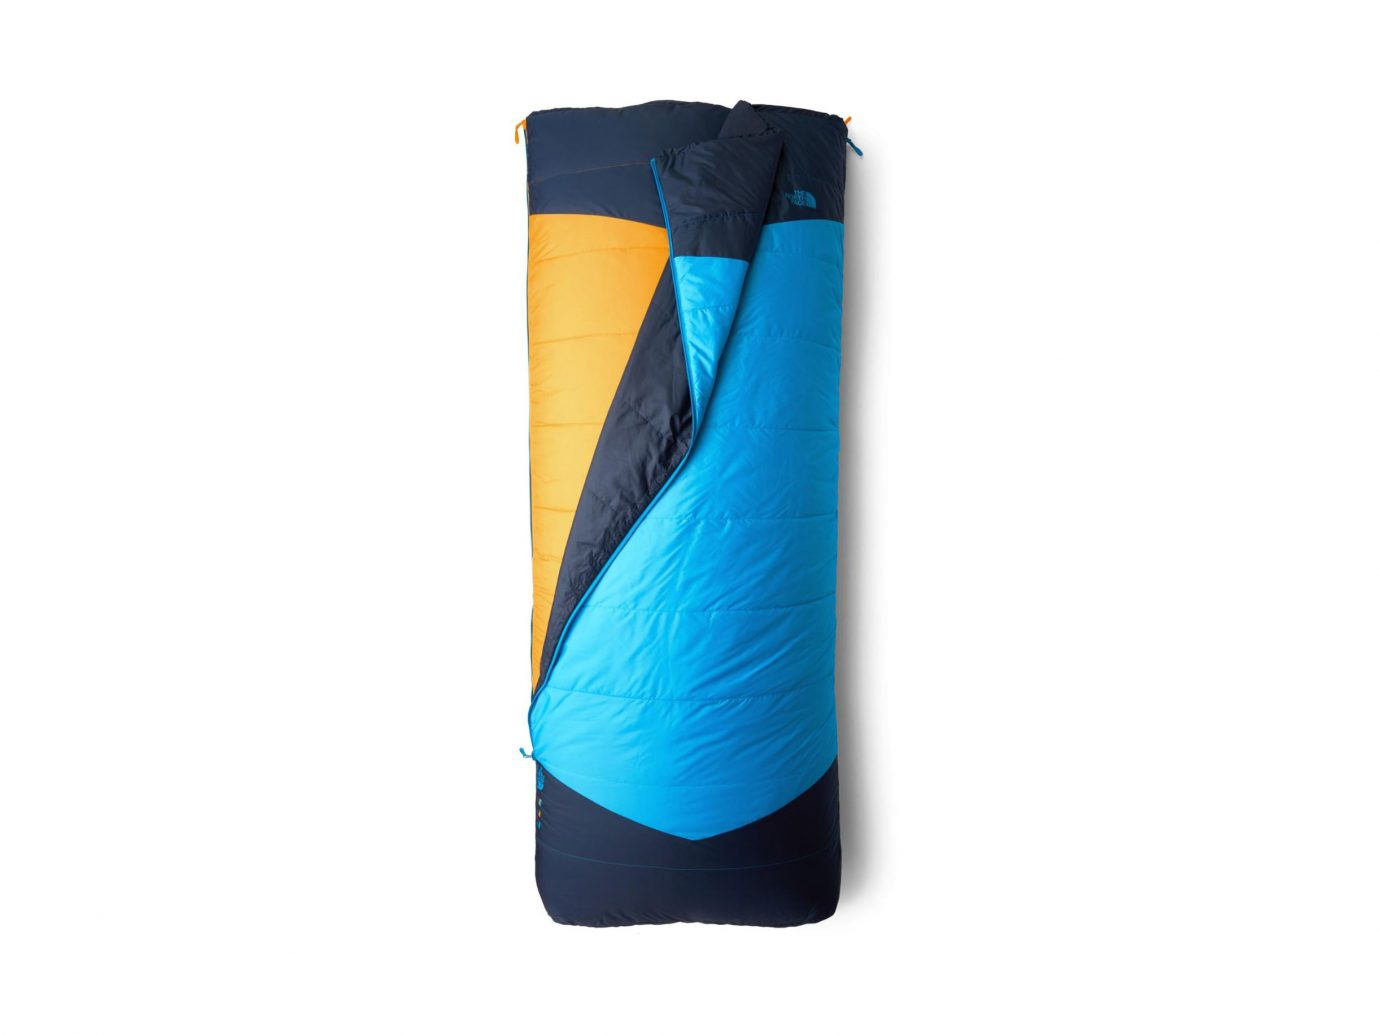 The North Face Dolomite One Sleeping Bag